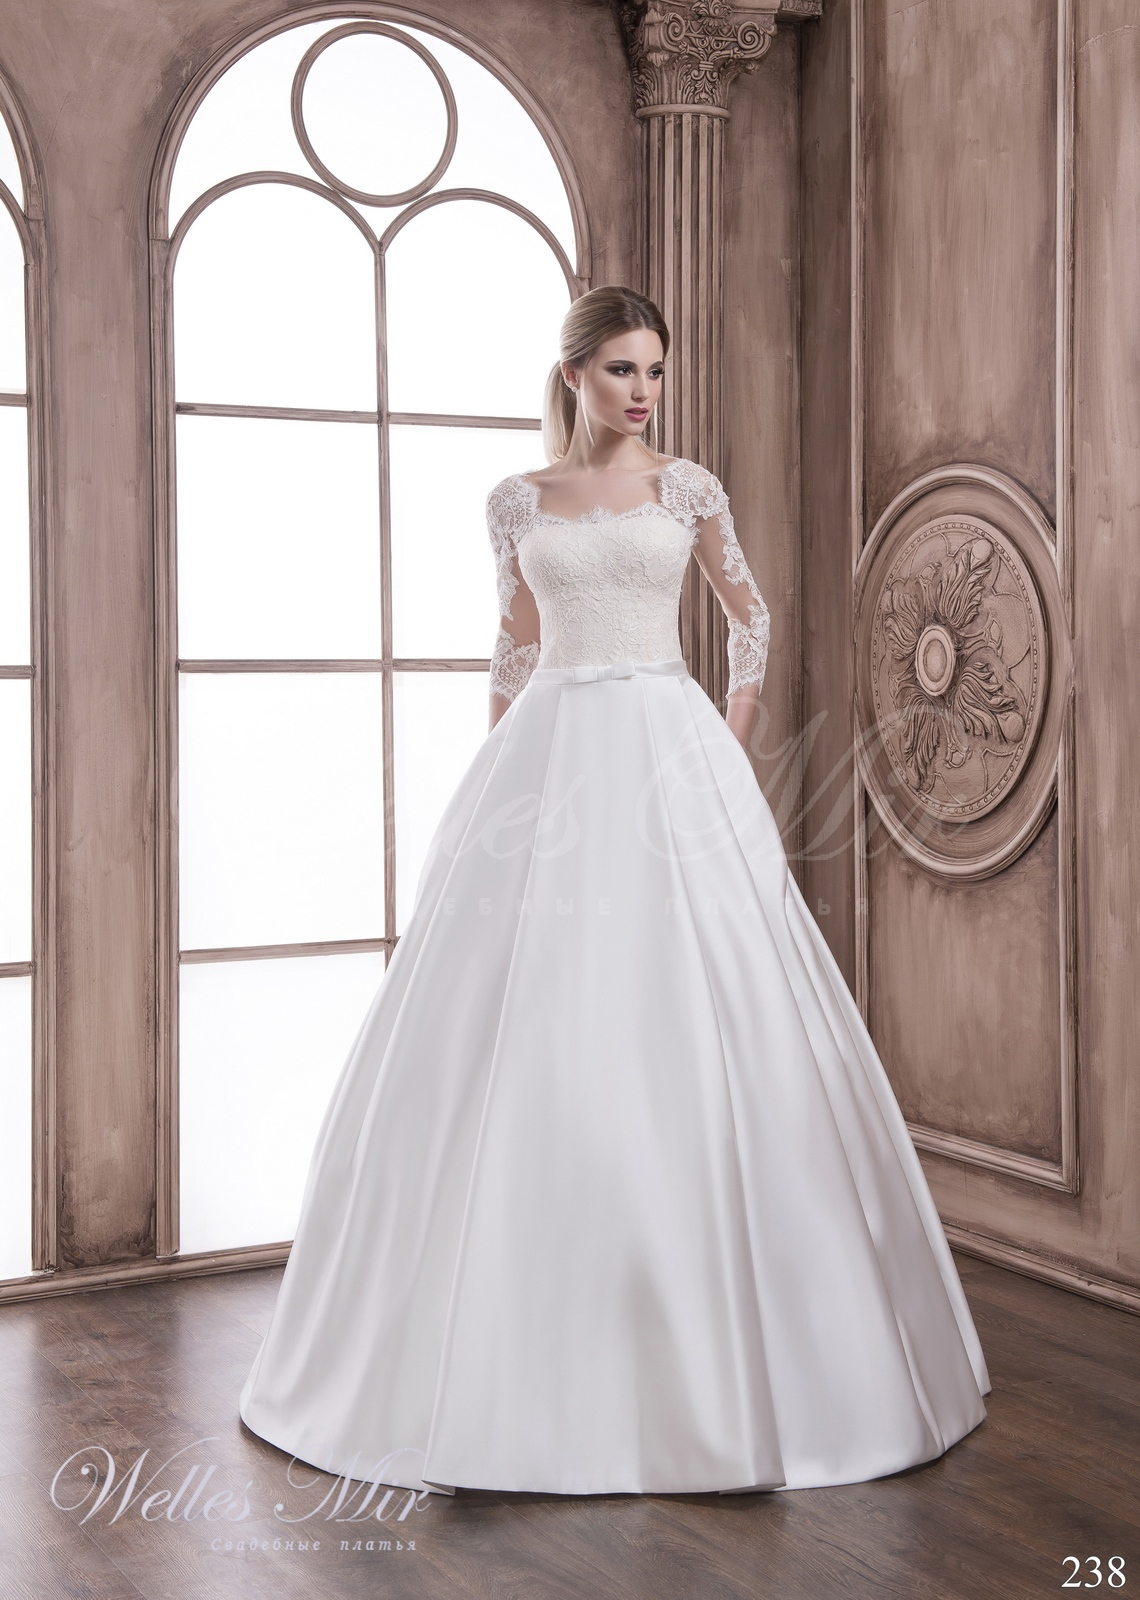 Wedding dresses 238